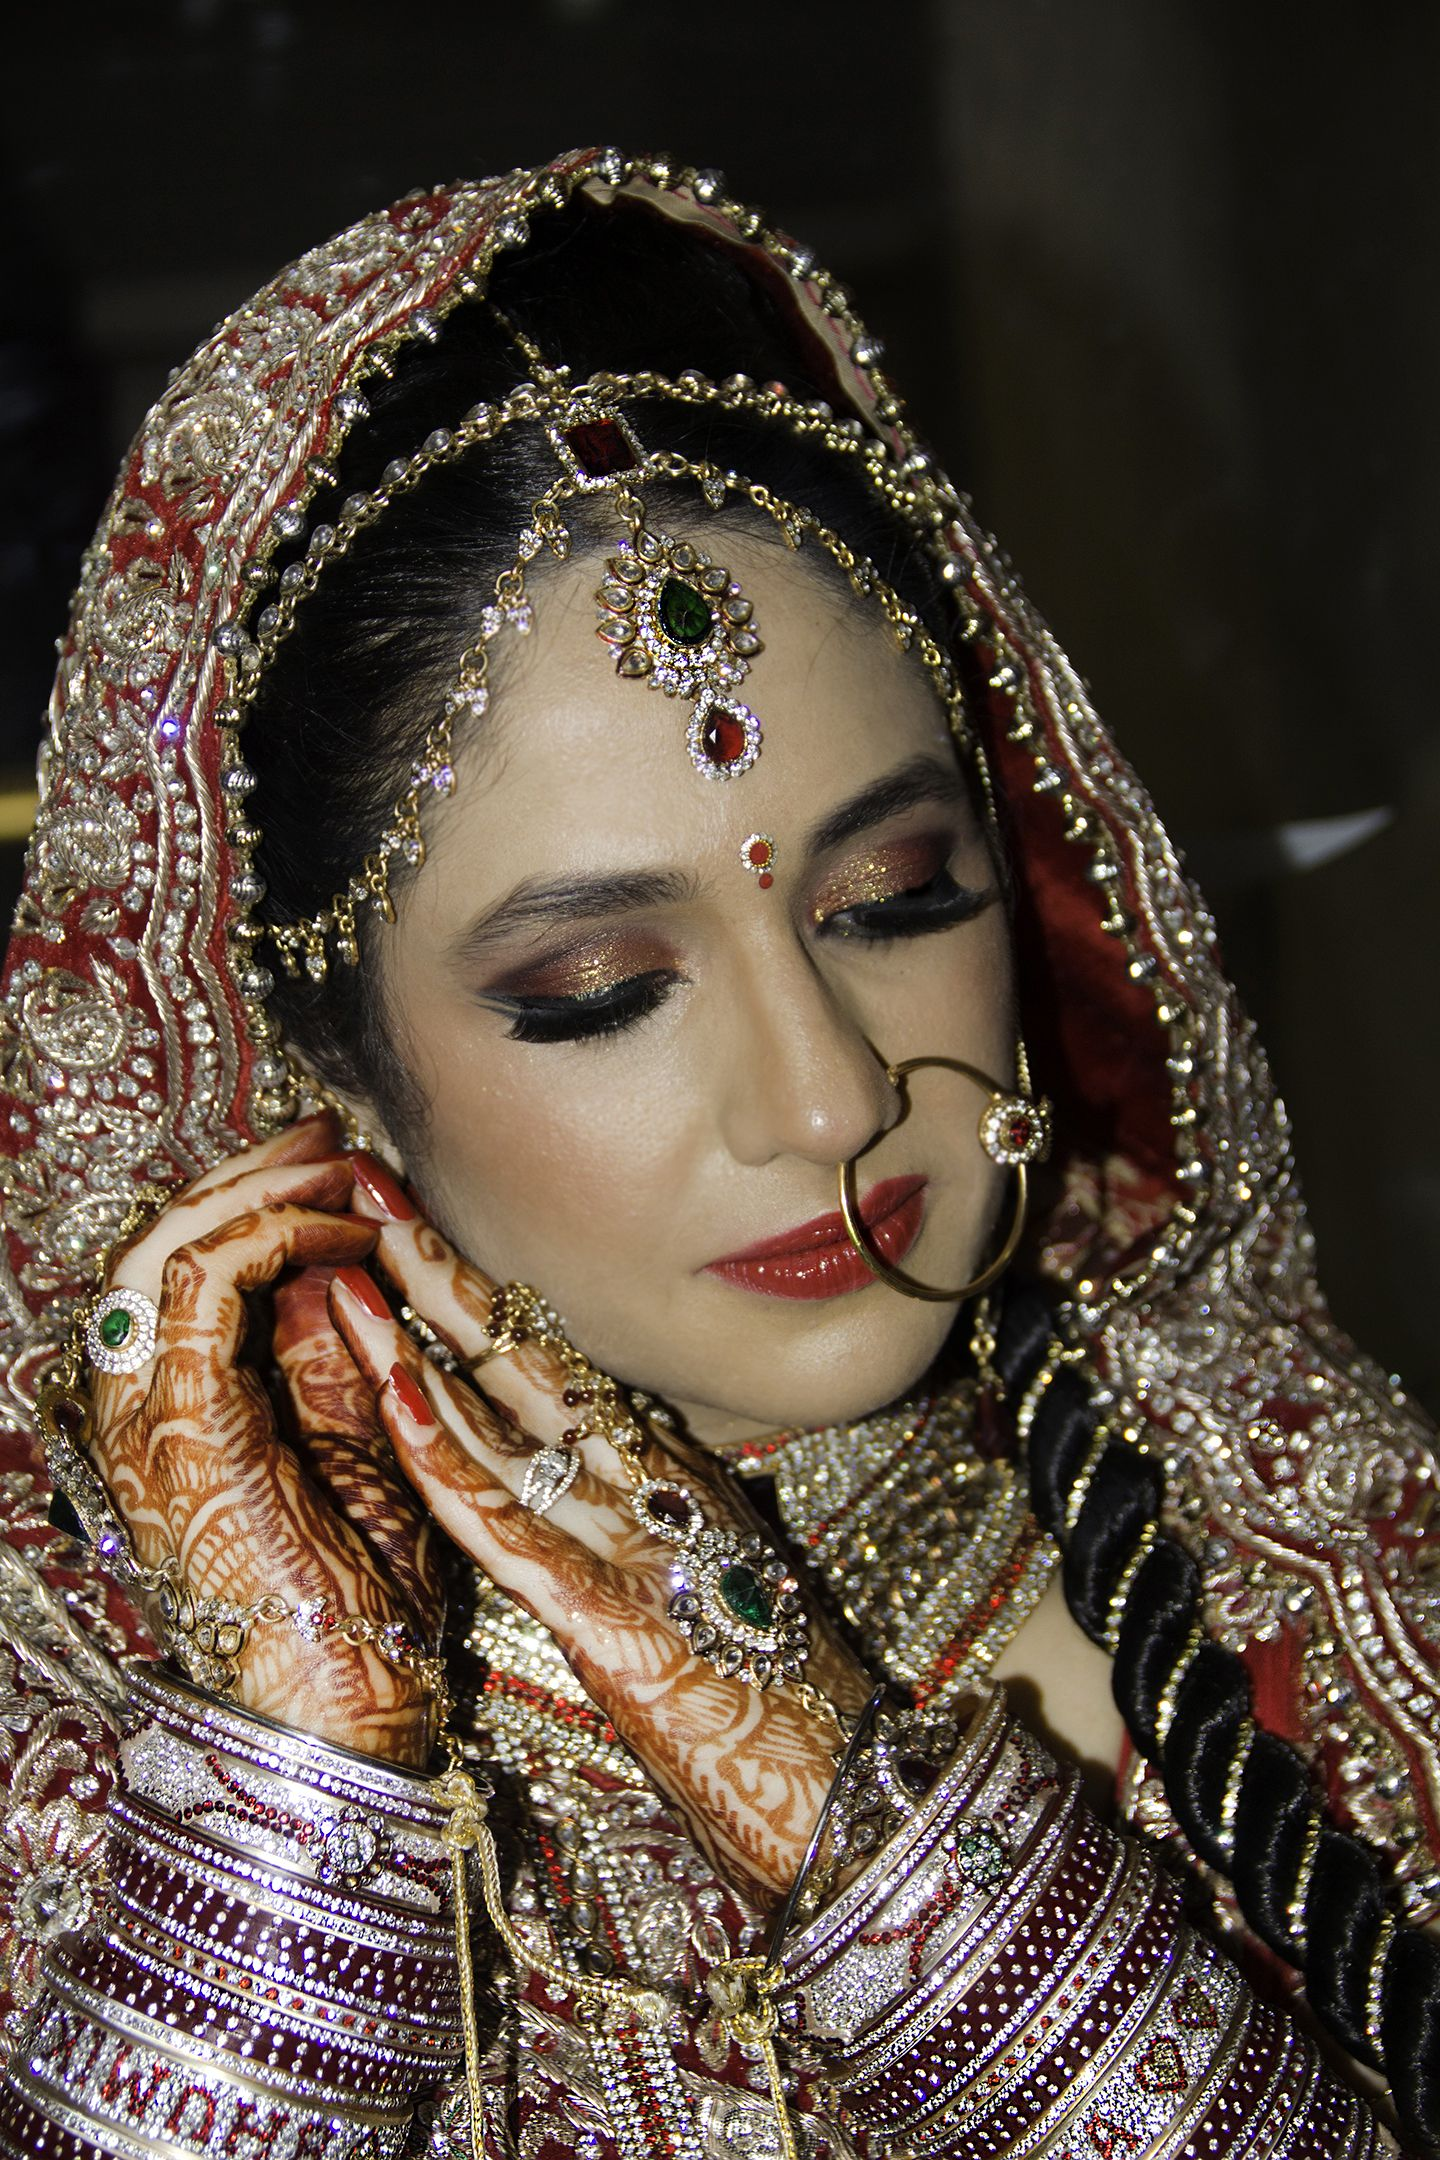 Professional Makeup Artist 11 01 11: Bridal Makeup By MJ In Lucknow. Professional Makeup Artist